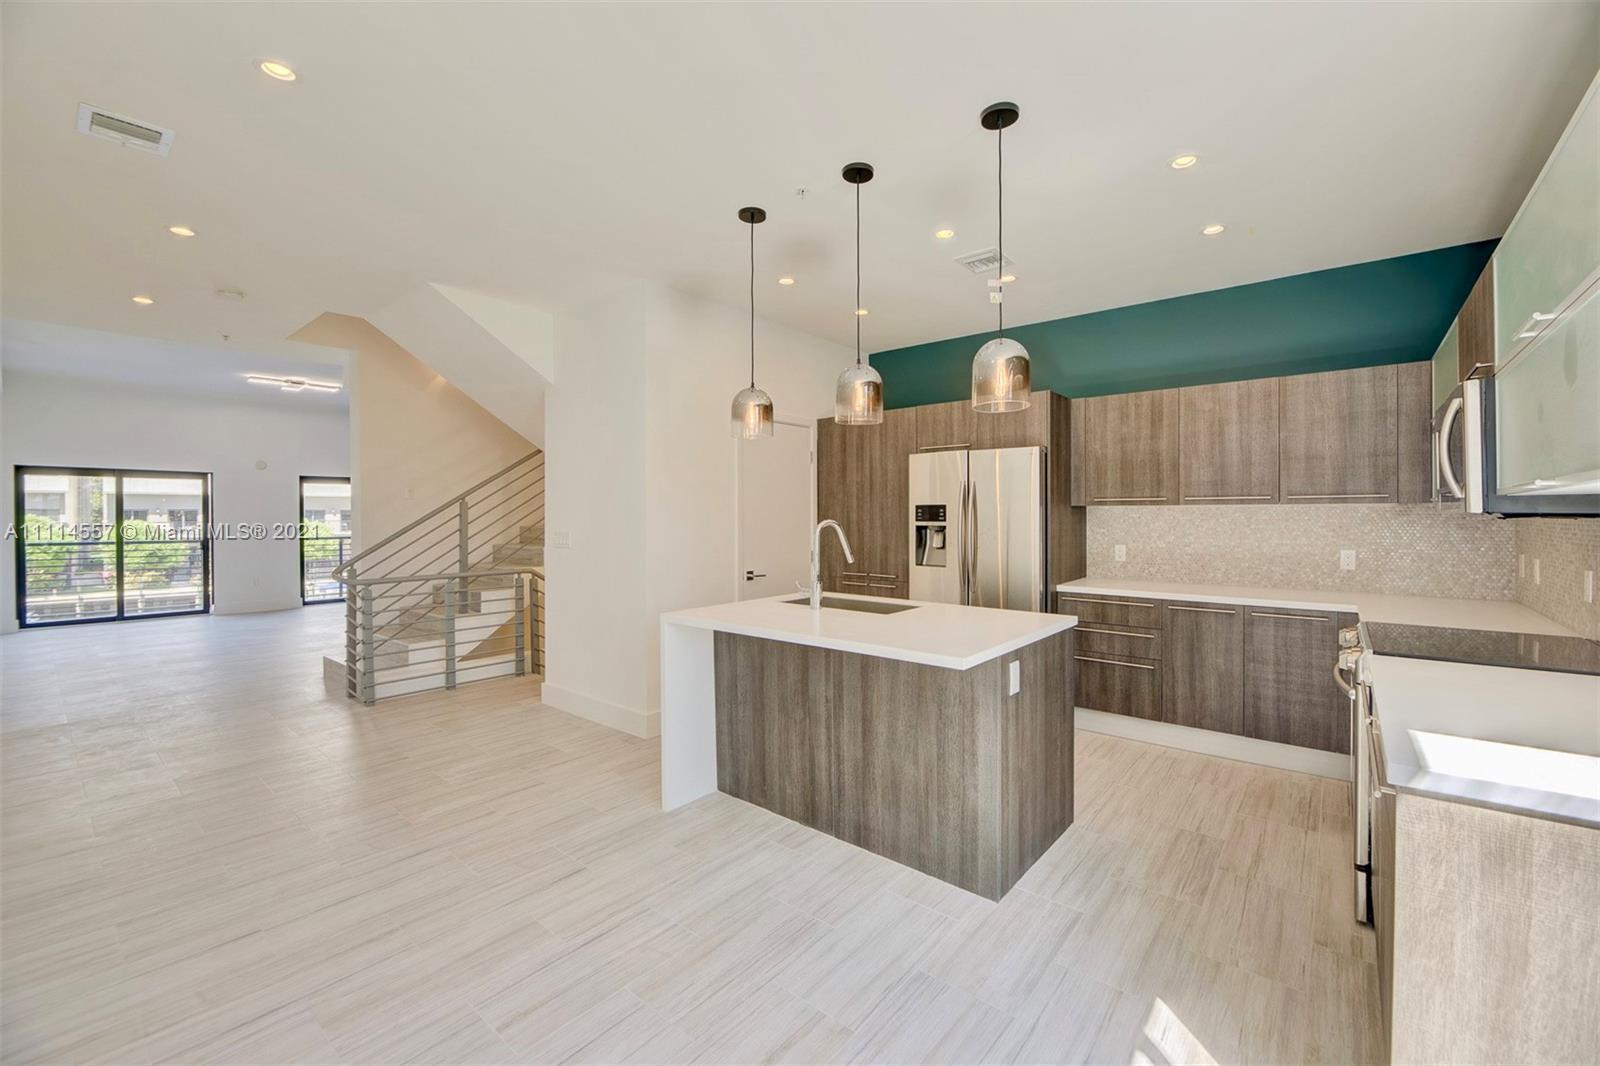 STYLISH & SPACIOUS NEW  4 STORY 3 BED 2.5BATH TOWNHOUSE FACING THE MARINA IN DESIRABLE KOI RESIDENCE